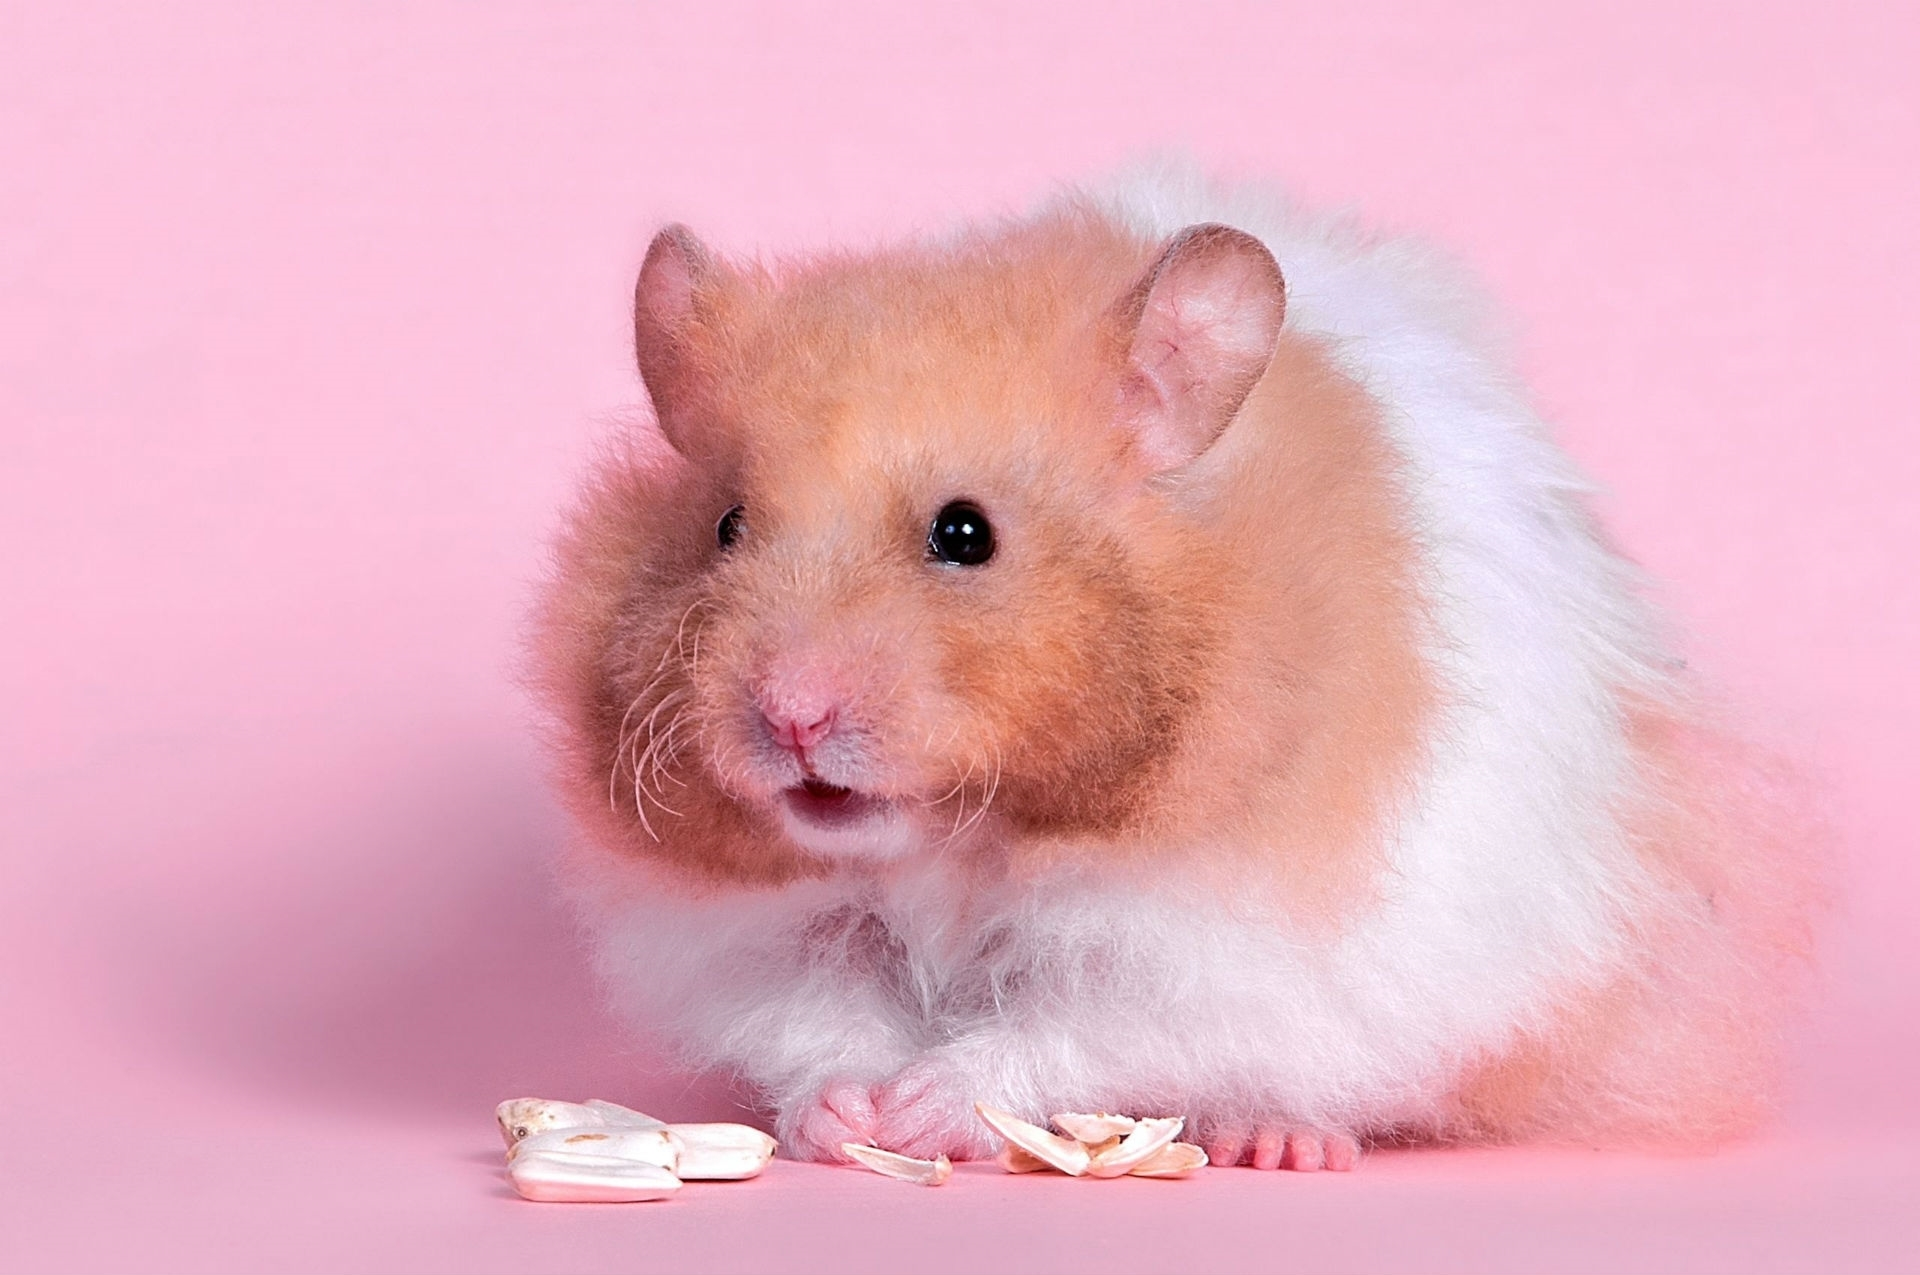 hamster images